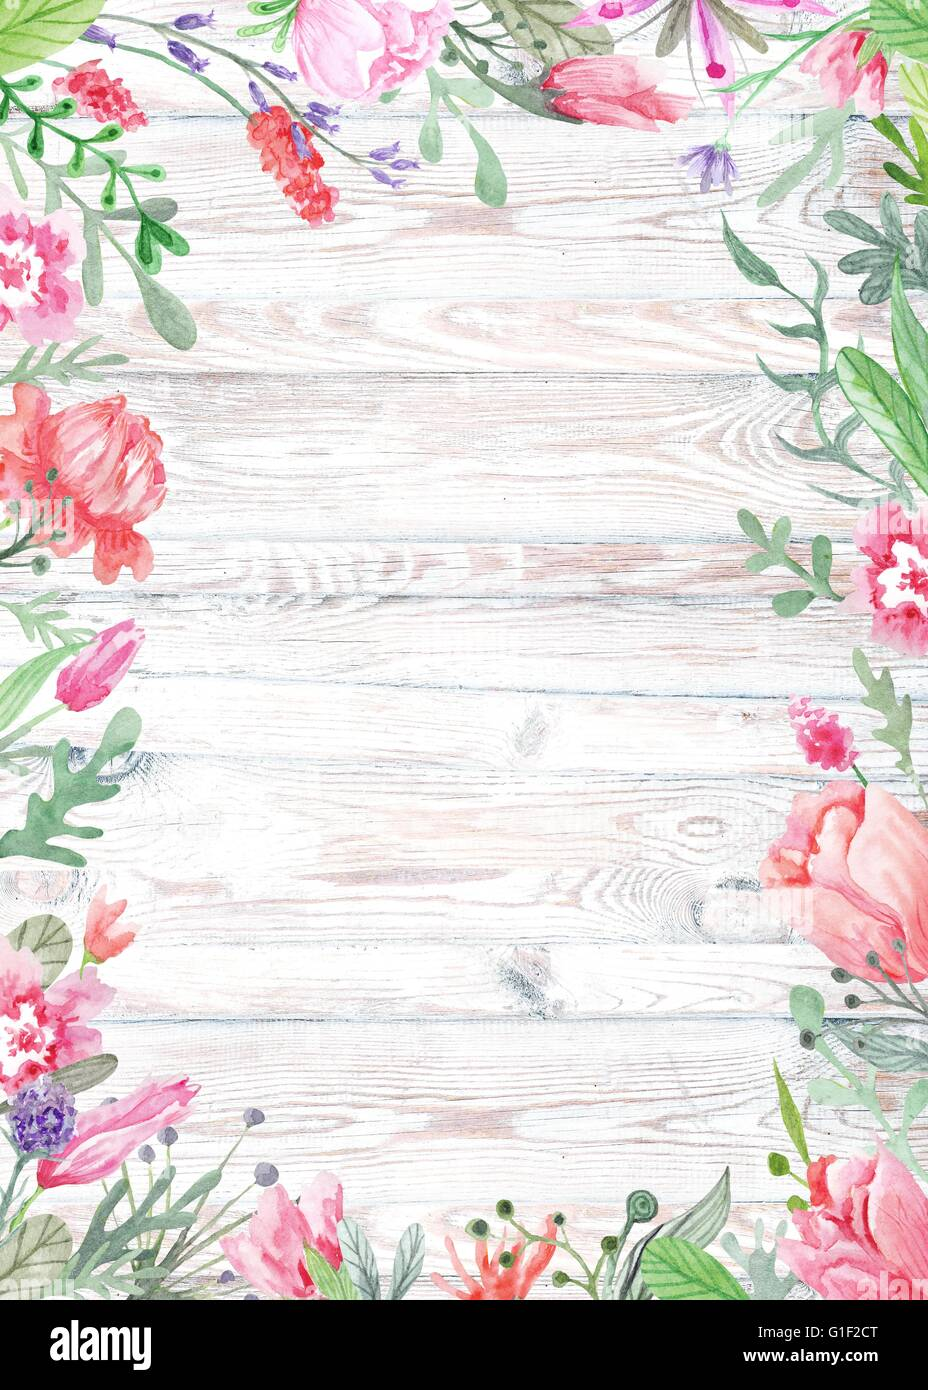 Shabby Chic Vintage Card Template For Wedding Summer